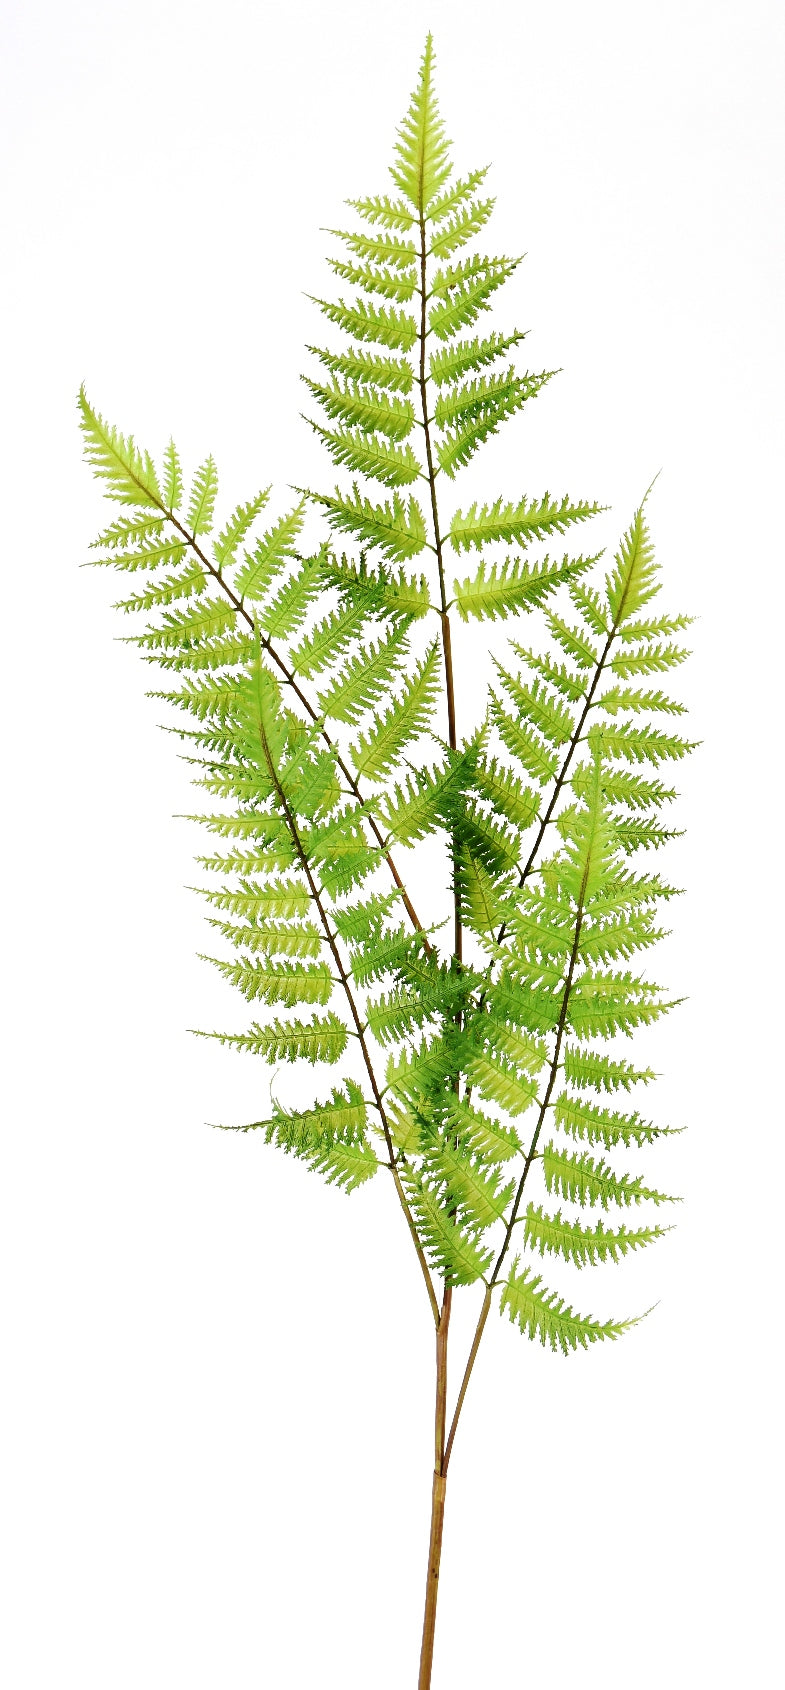 Wood Fern Stem